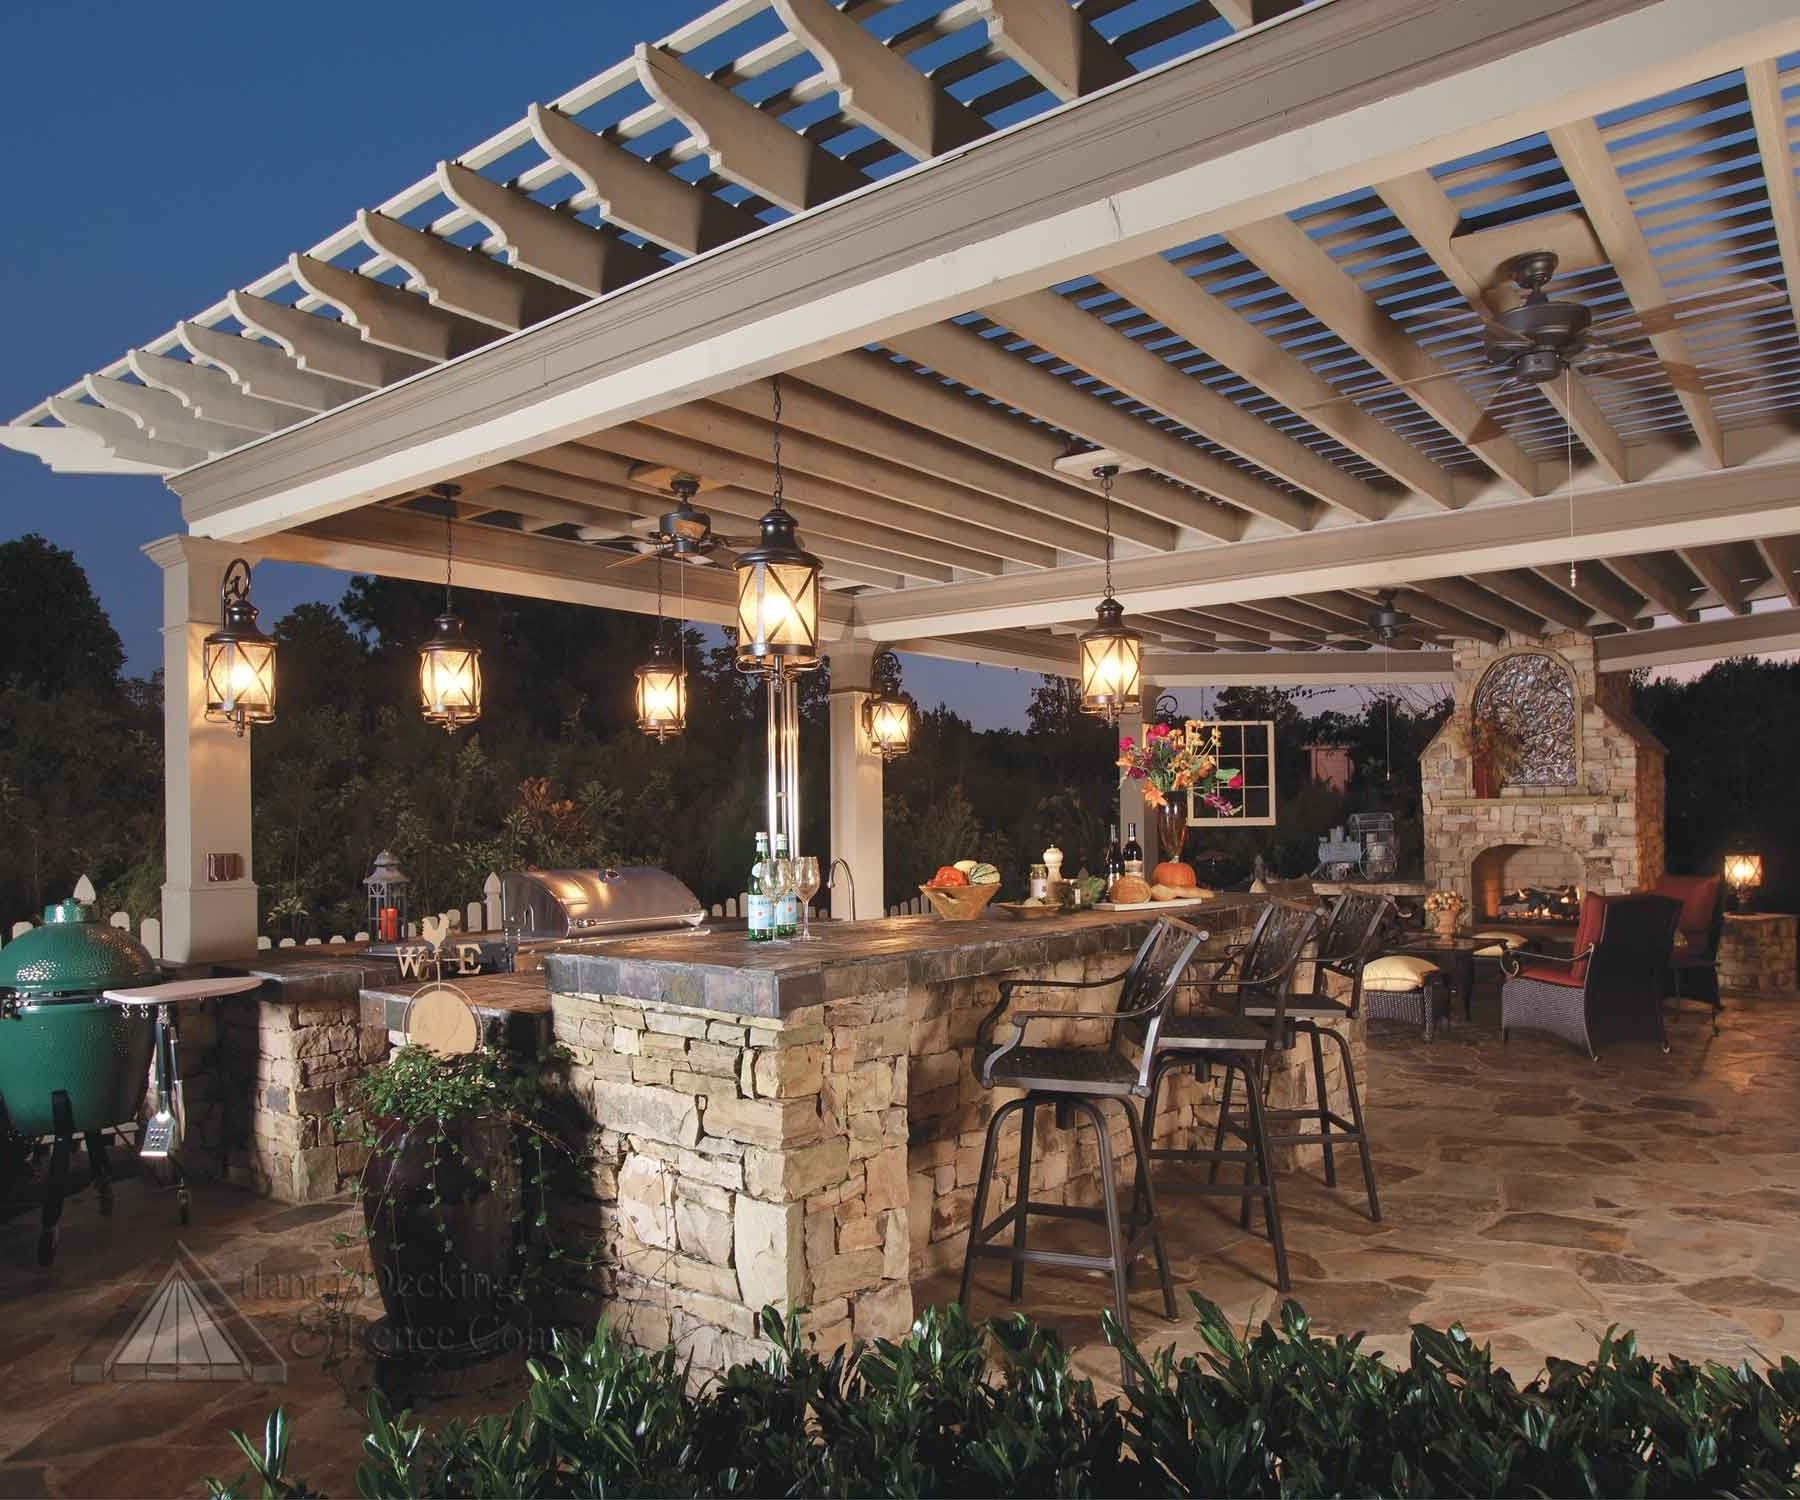 Ideas And Tips On How To Hang Patio Lights Diy Of Outdoor Pation Pertaining To Most Recent Outdoor Hanging Patio Lanterns (Gallery 4 of 20)